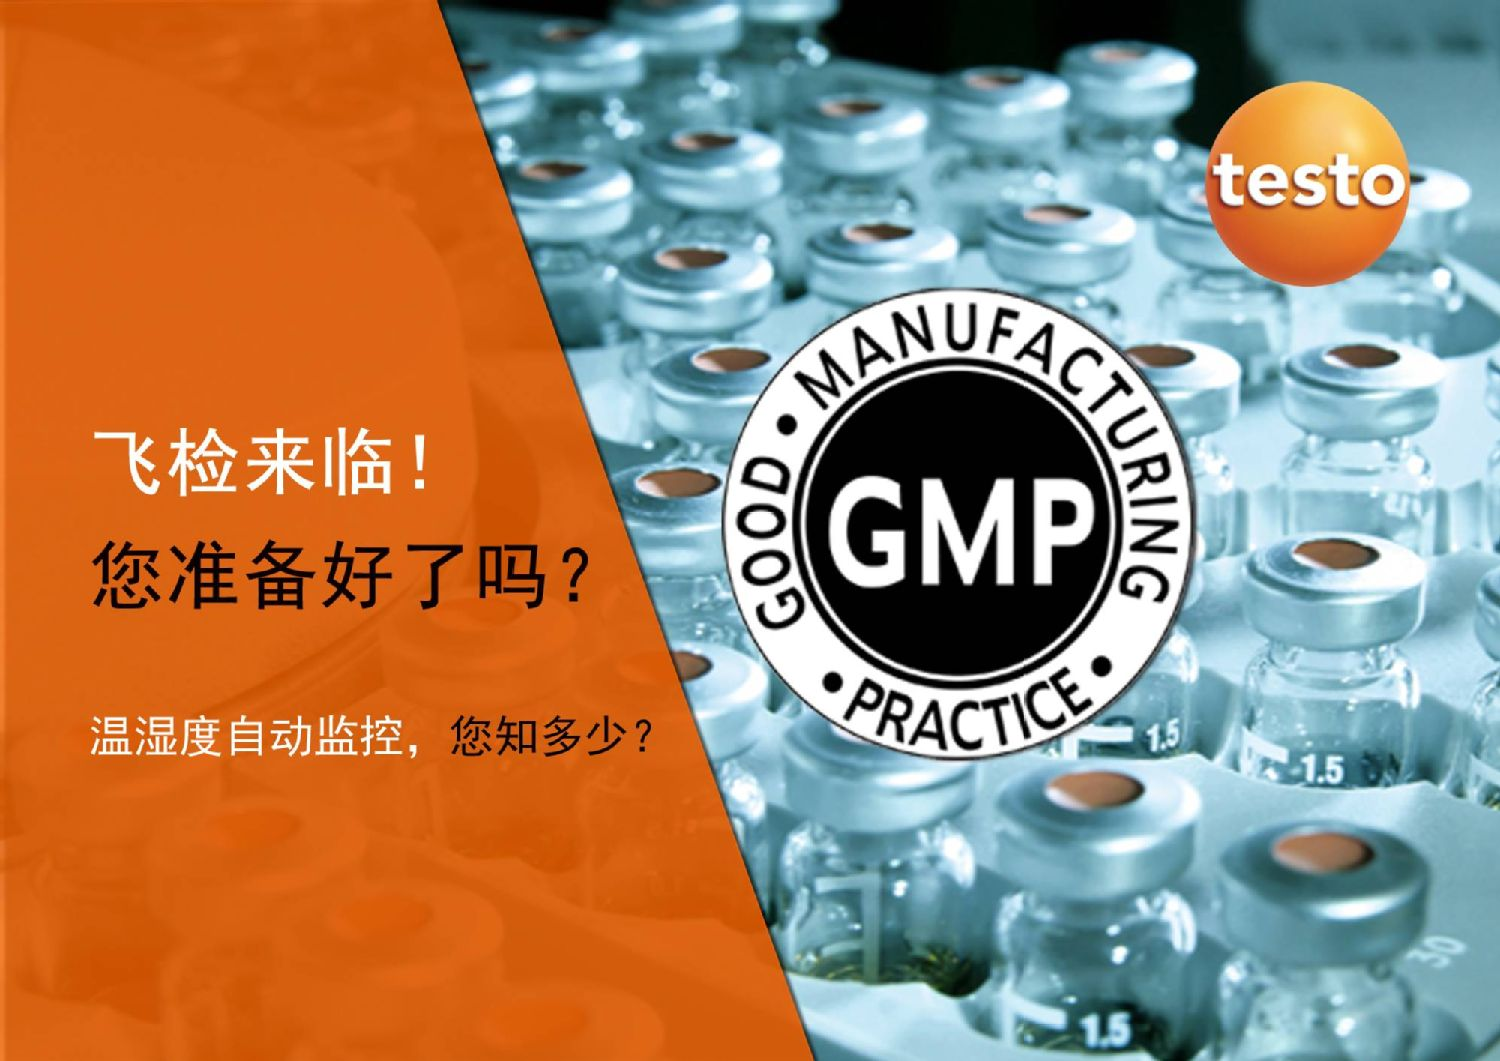 CN_20190318_Pharma_news_GMP-01.jpg